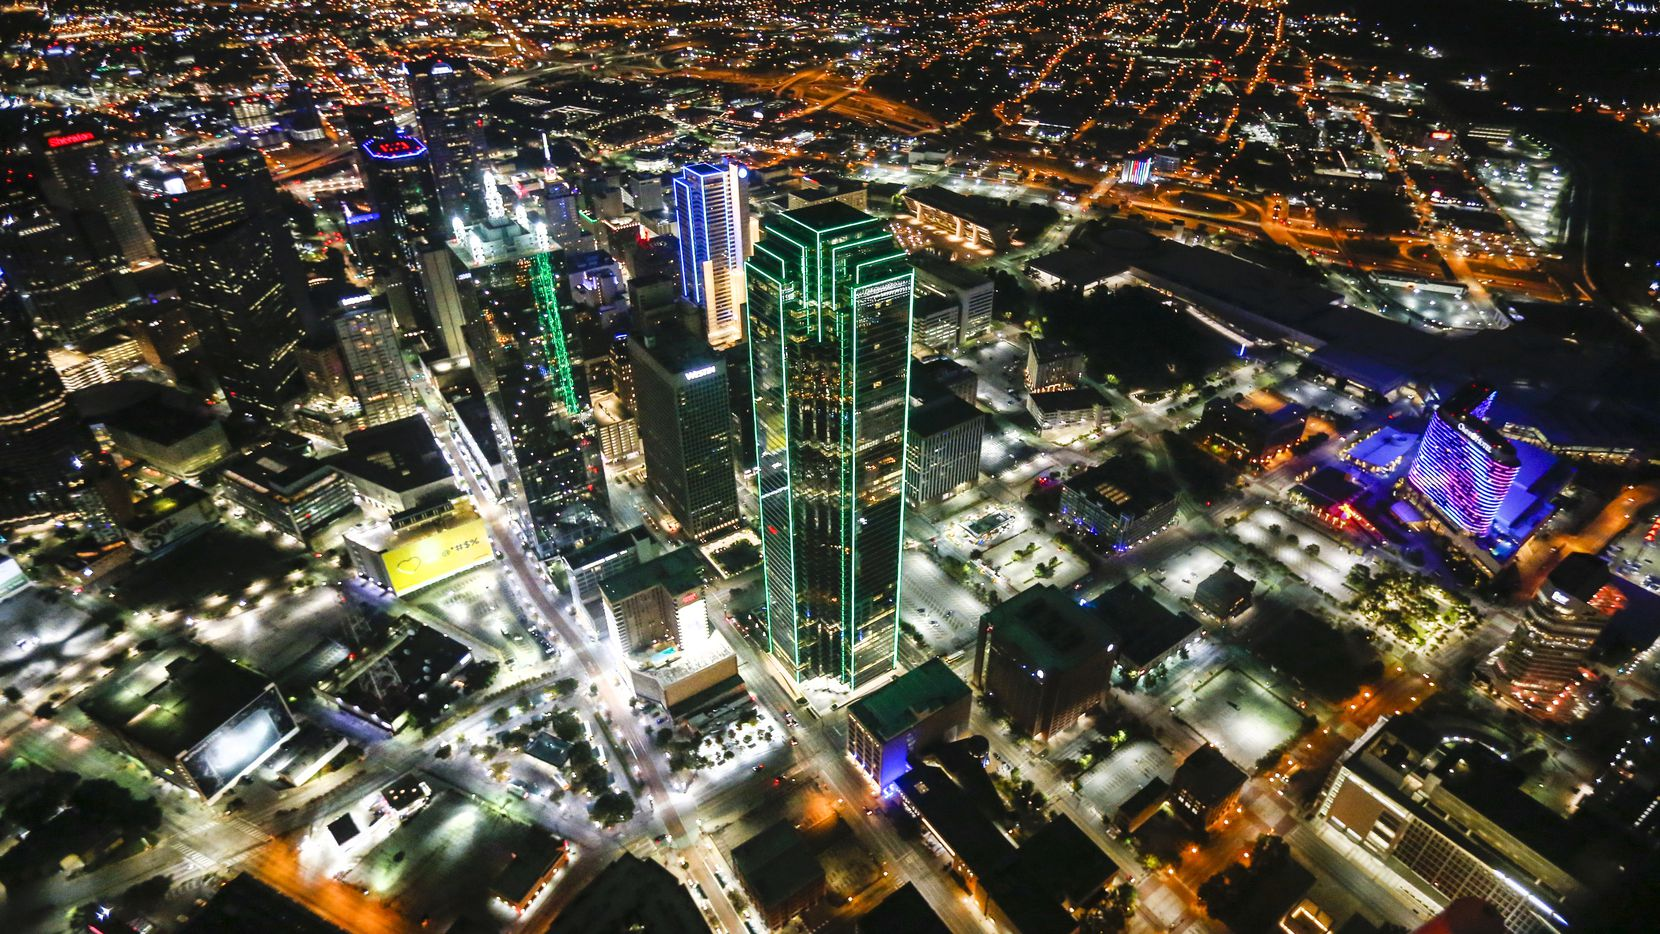 A decade after the Great Recession, Dallas' real estate market shows no sign of a slowdown.